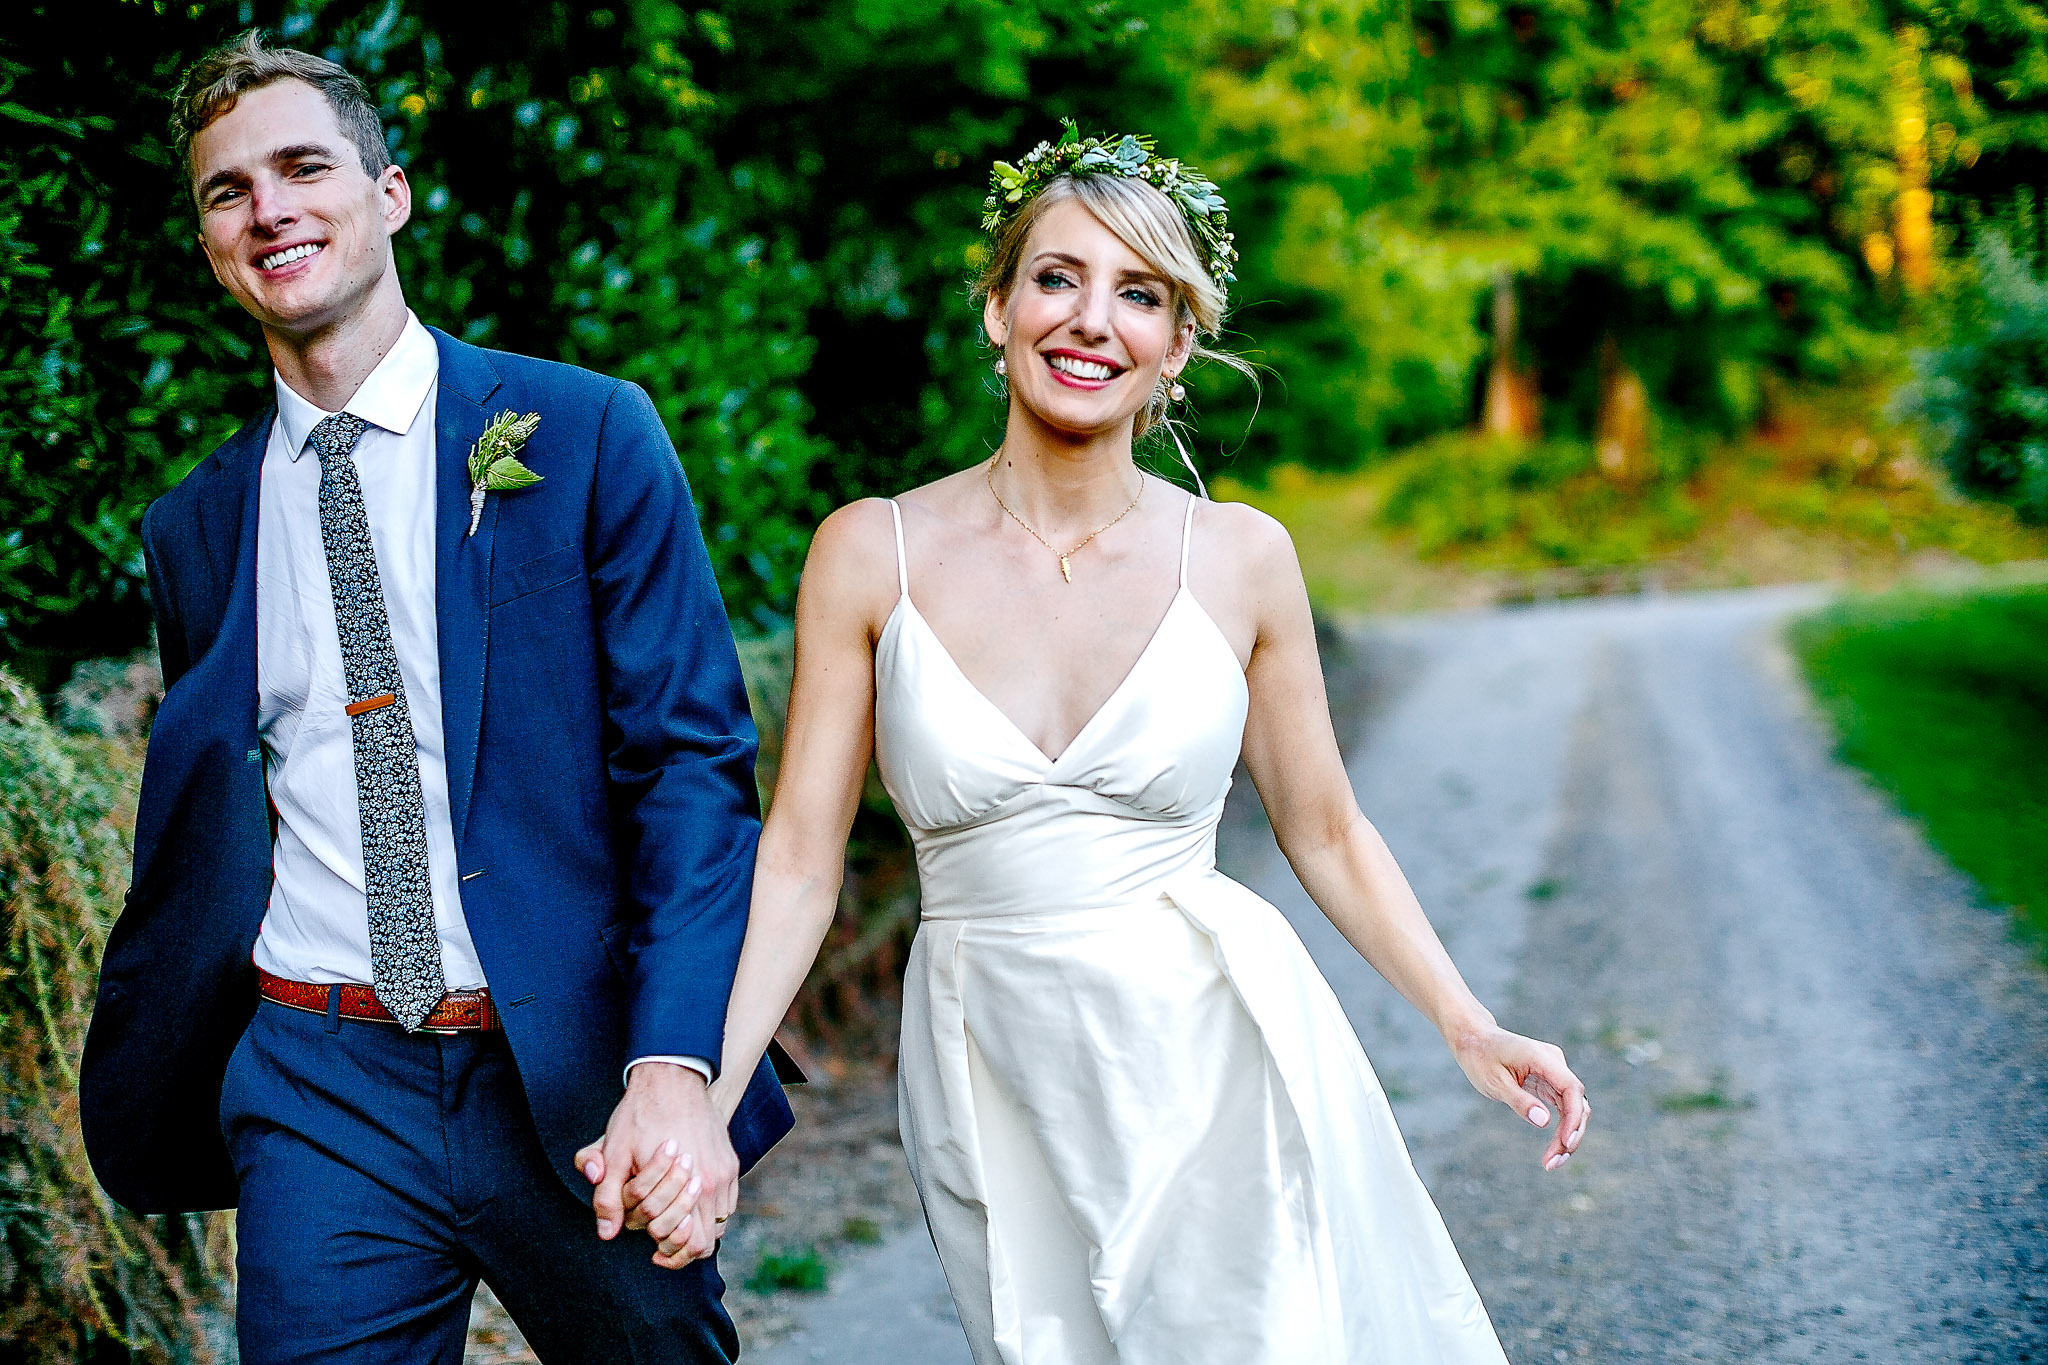 Gorgeous bride with flower crown and groom walking and laughing down gravel road in forest Camp De Angelos